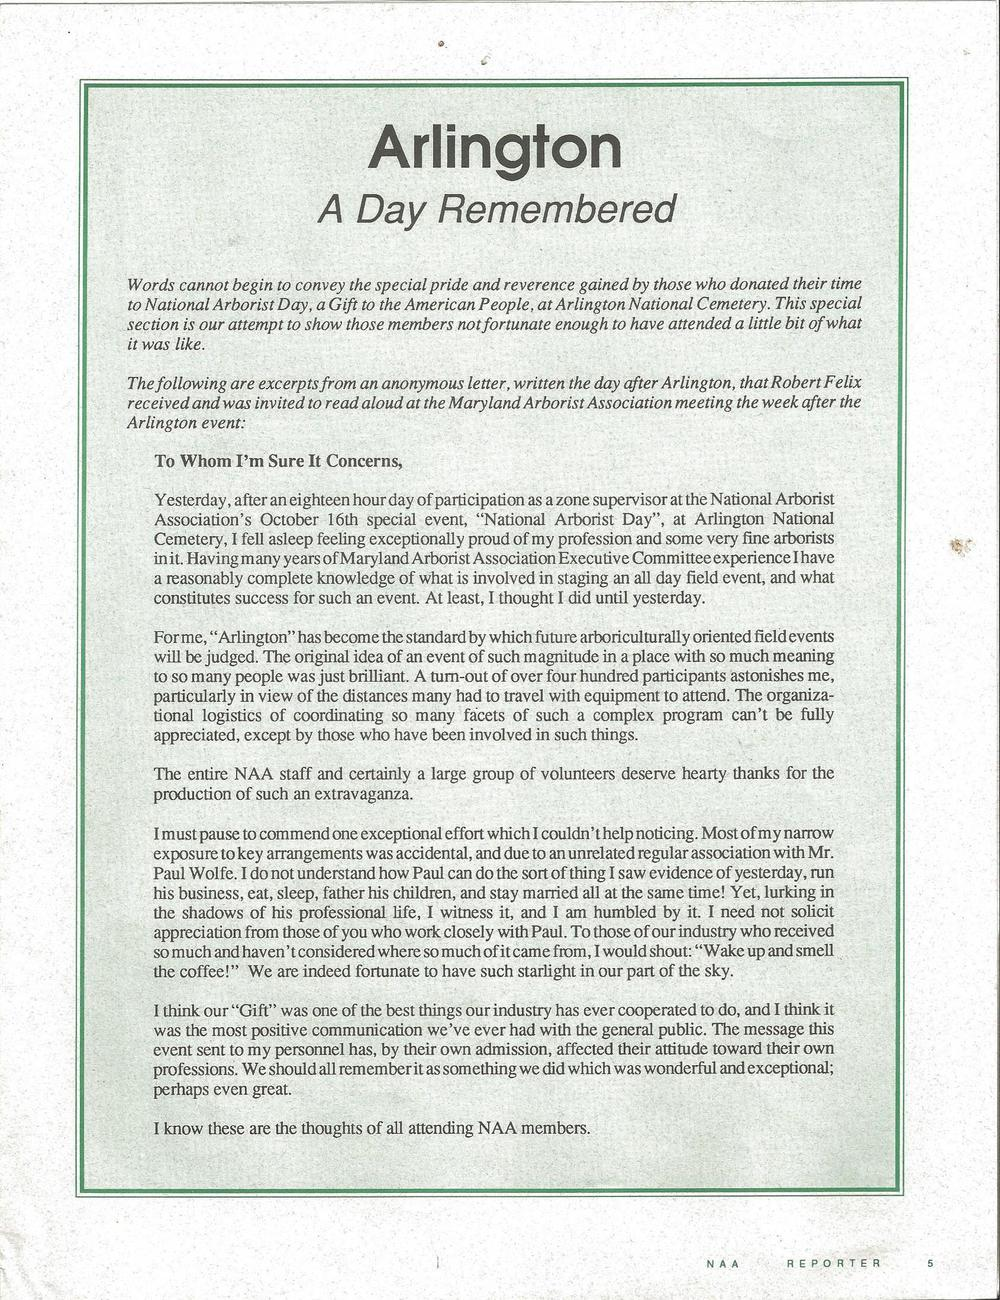 This letter was taken from what was once known as the National Arborists Association (NAA) Reporter November Edition 1993.  The NAA is now known as, TCIA - Tree Care Industry Association. Race Mountain Tree prides itself on donating our time and our services to the community and such events as this. We were one of many tree care companies on hand that day October 16th, 1993 in Arlington.